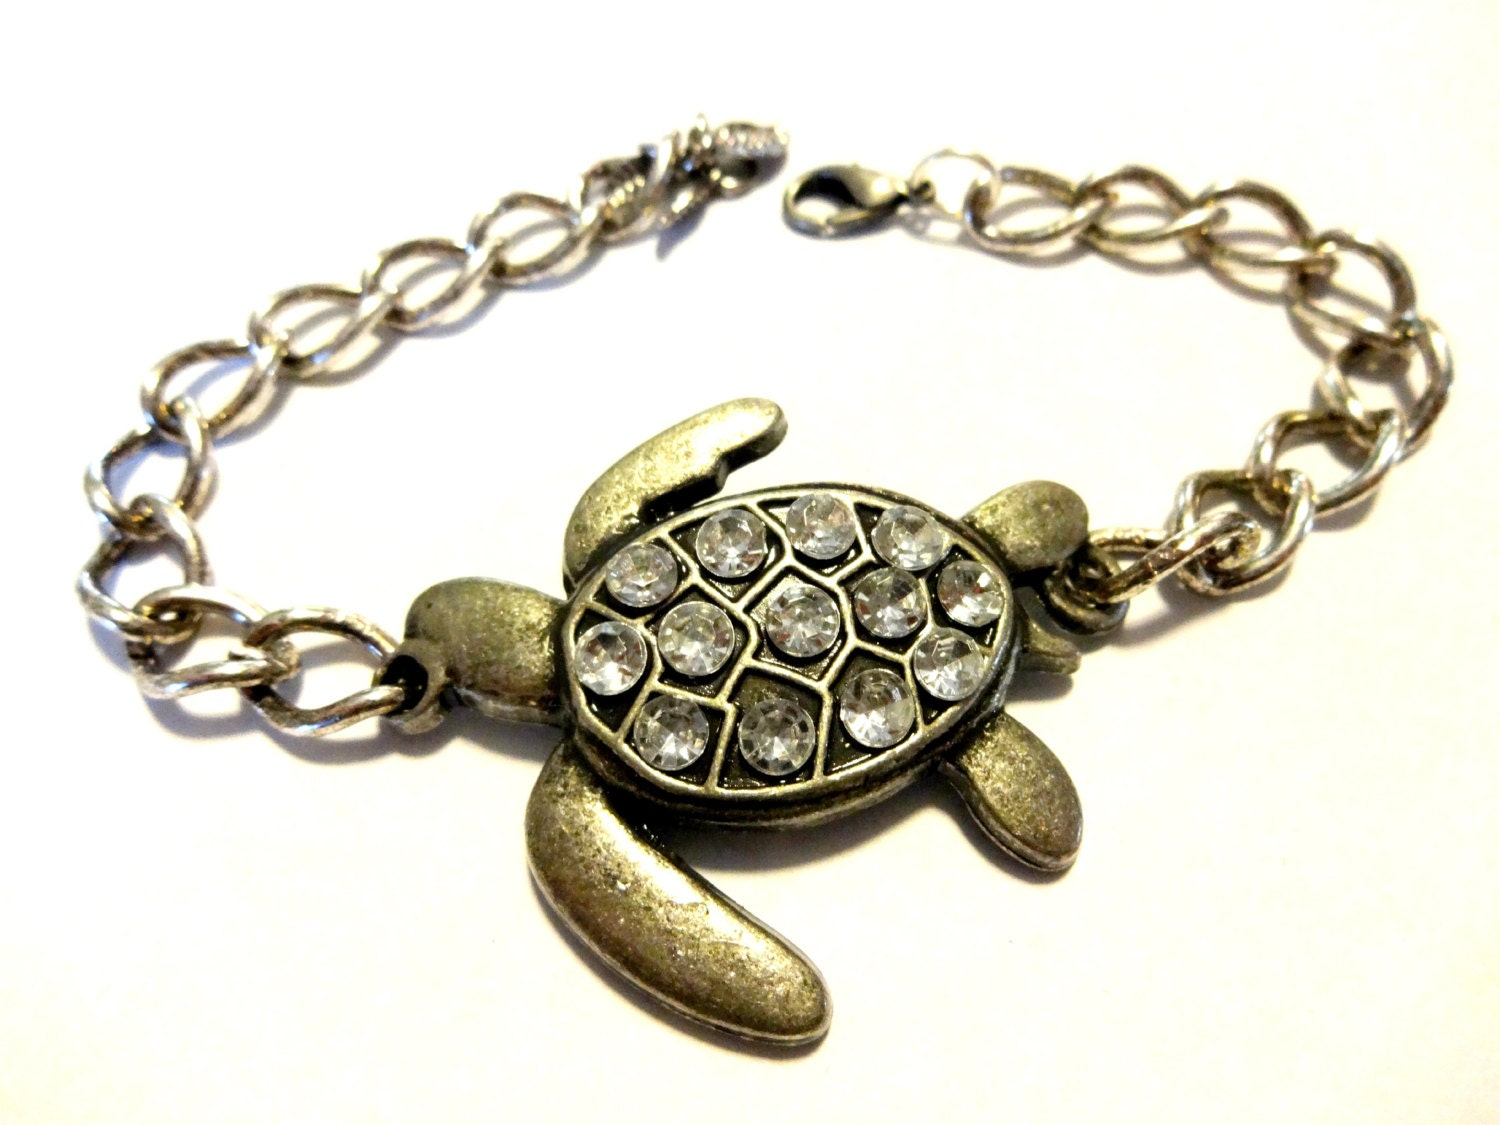 plain your features link aeravida from with turtle this links mini accessorize cute fashionable sea bracelets crafted silver details thailand wrist bracelet pb products